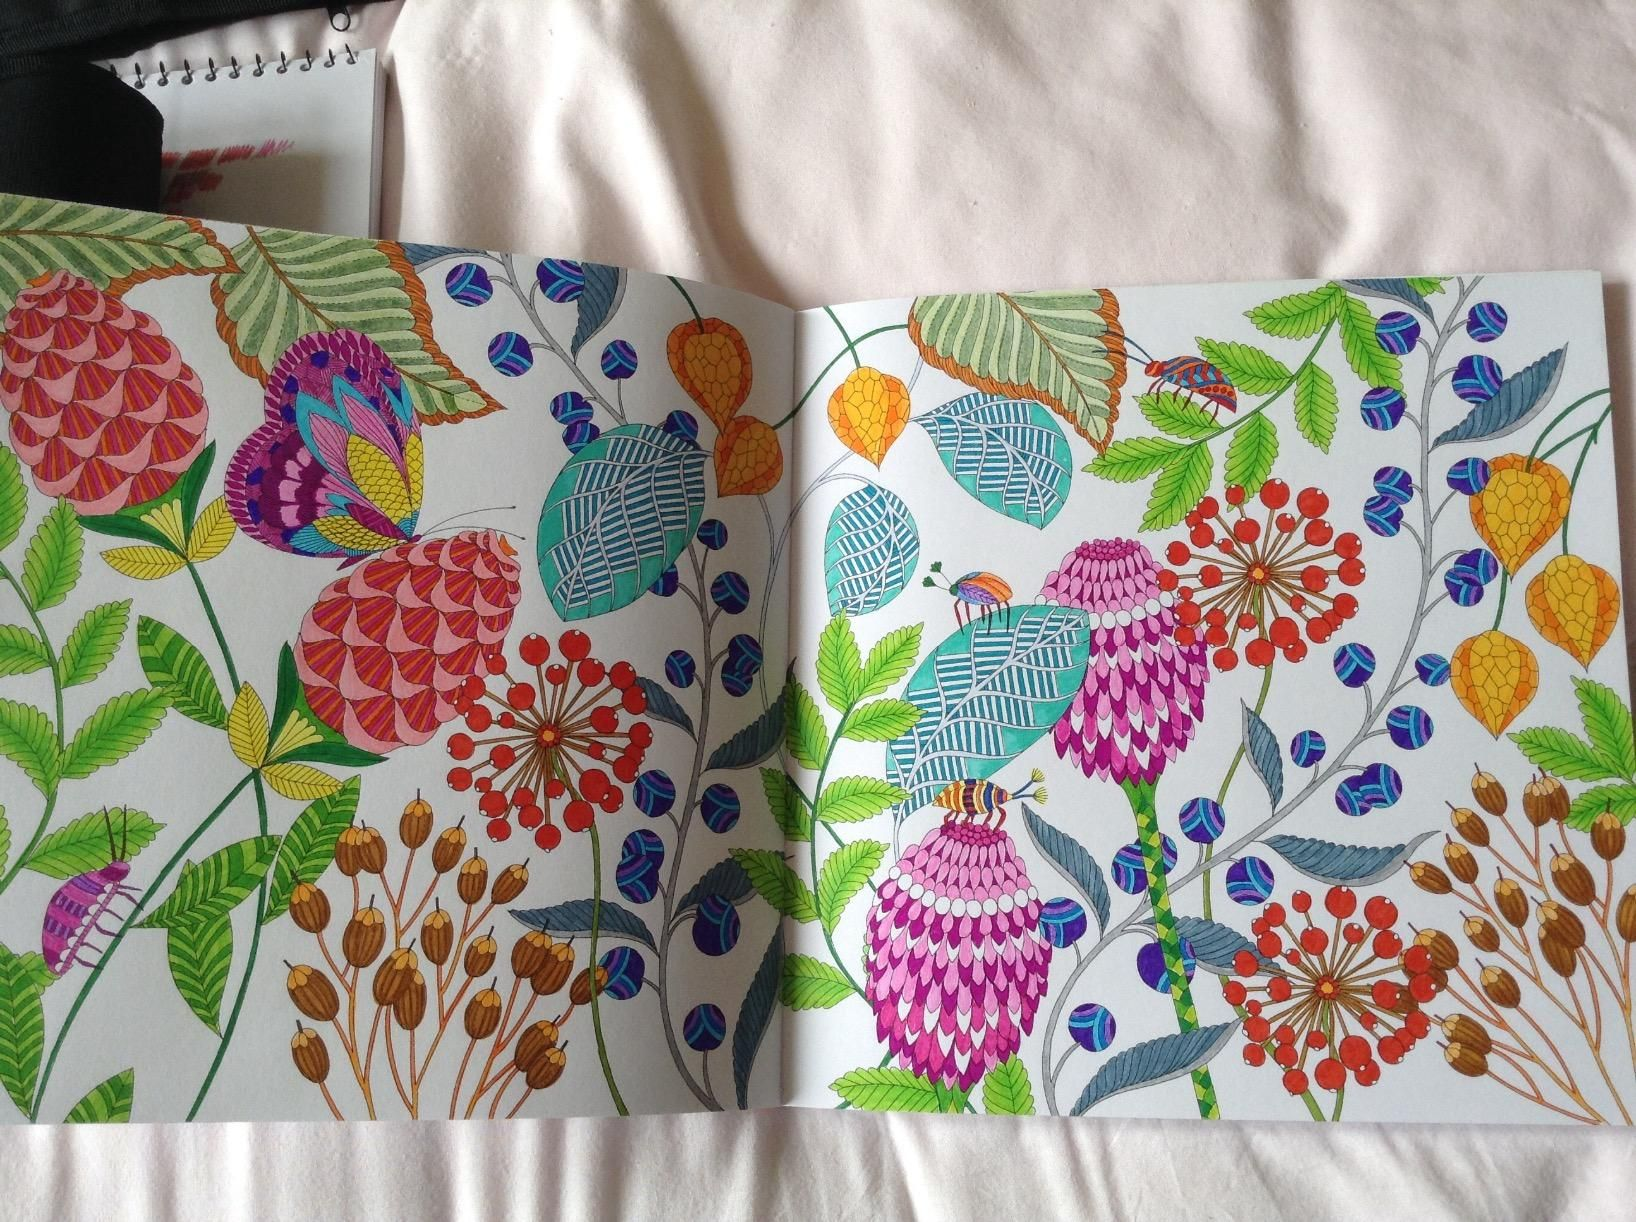 Millie Marottas Tropical Wonderland A Colouring Book Adventure Looks Great